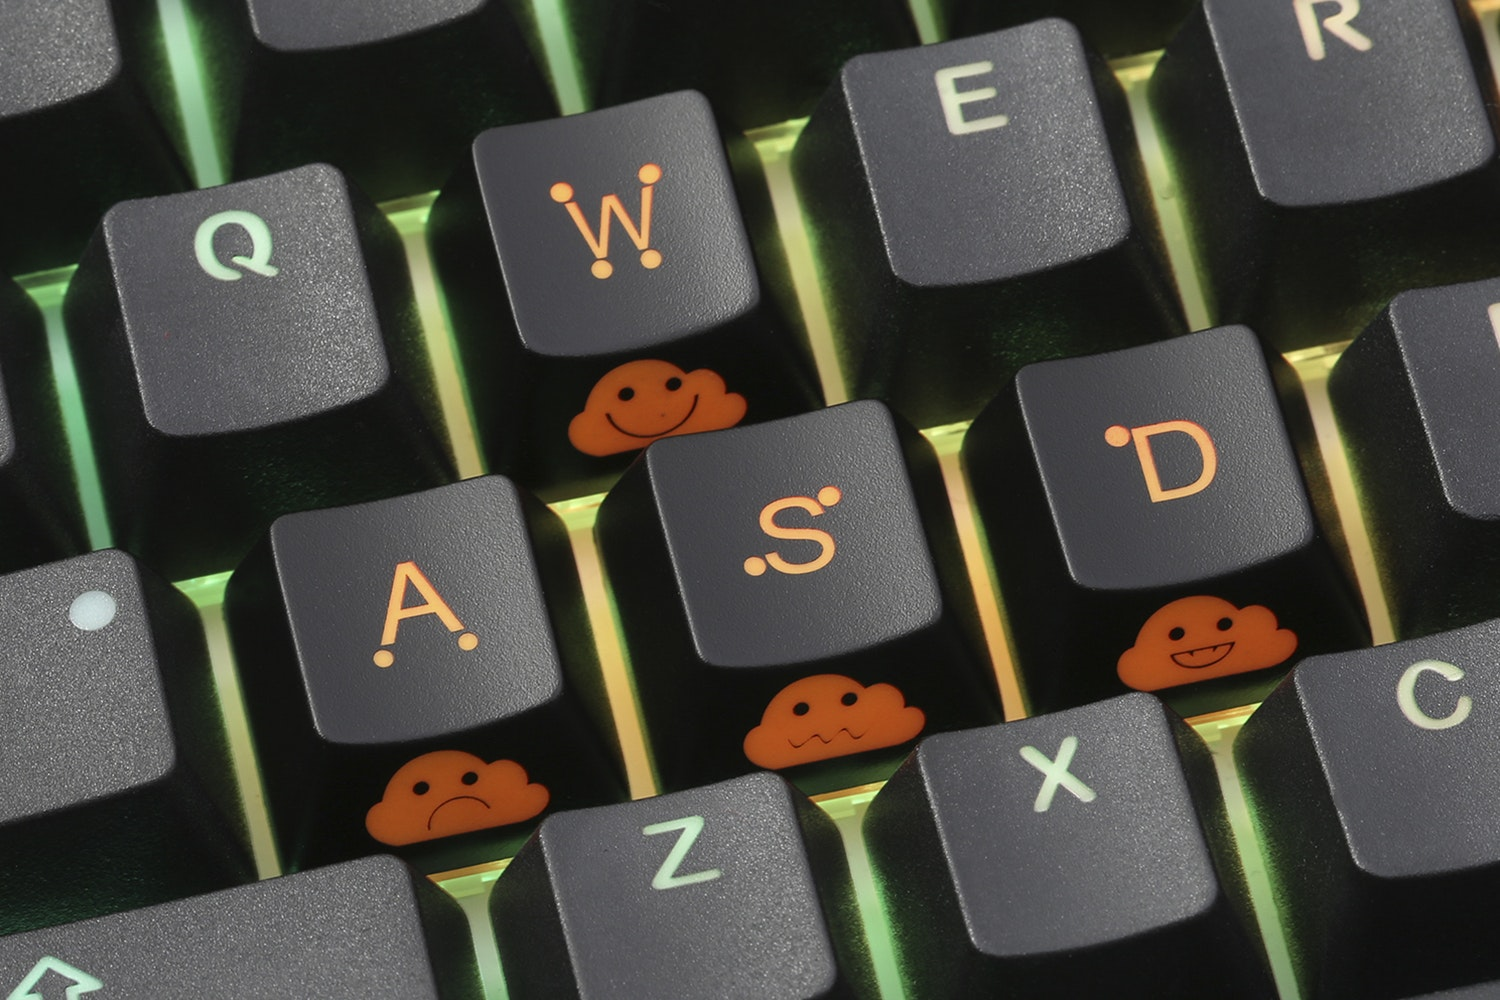 WASD + Arrow Shine-Through Novelty Keycaps